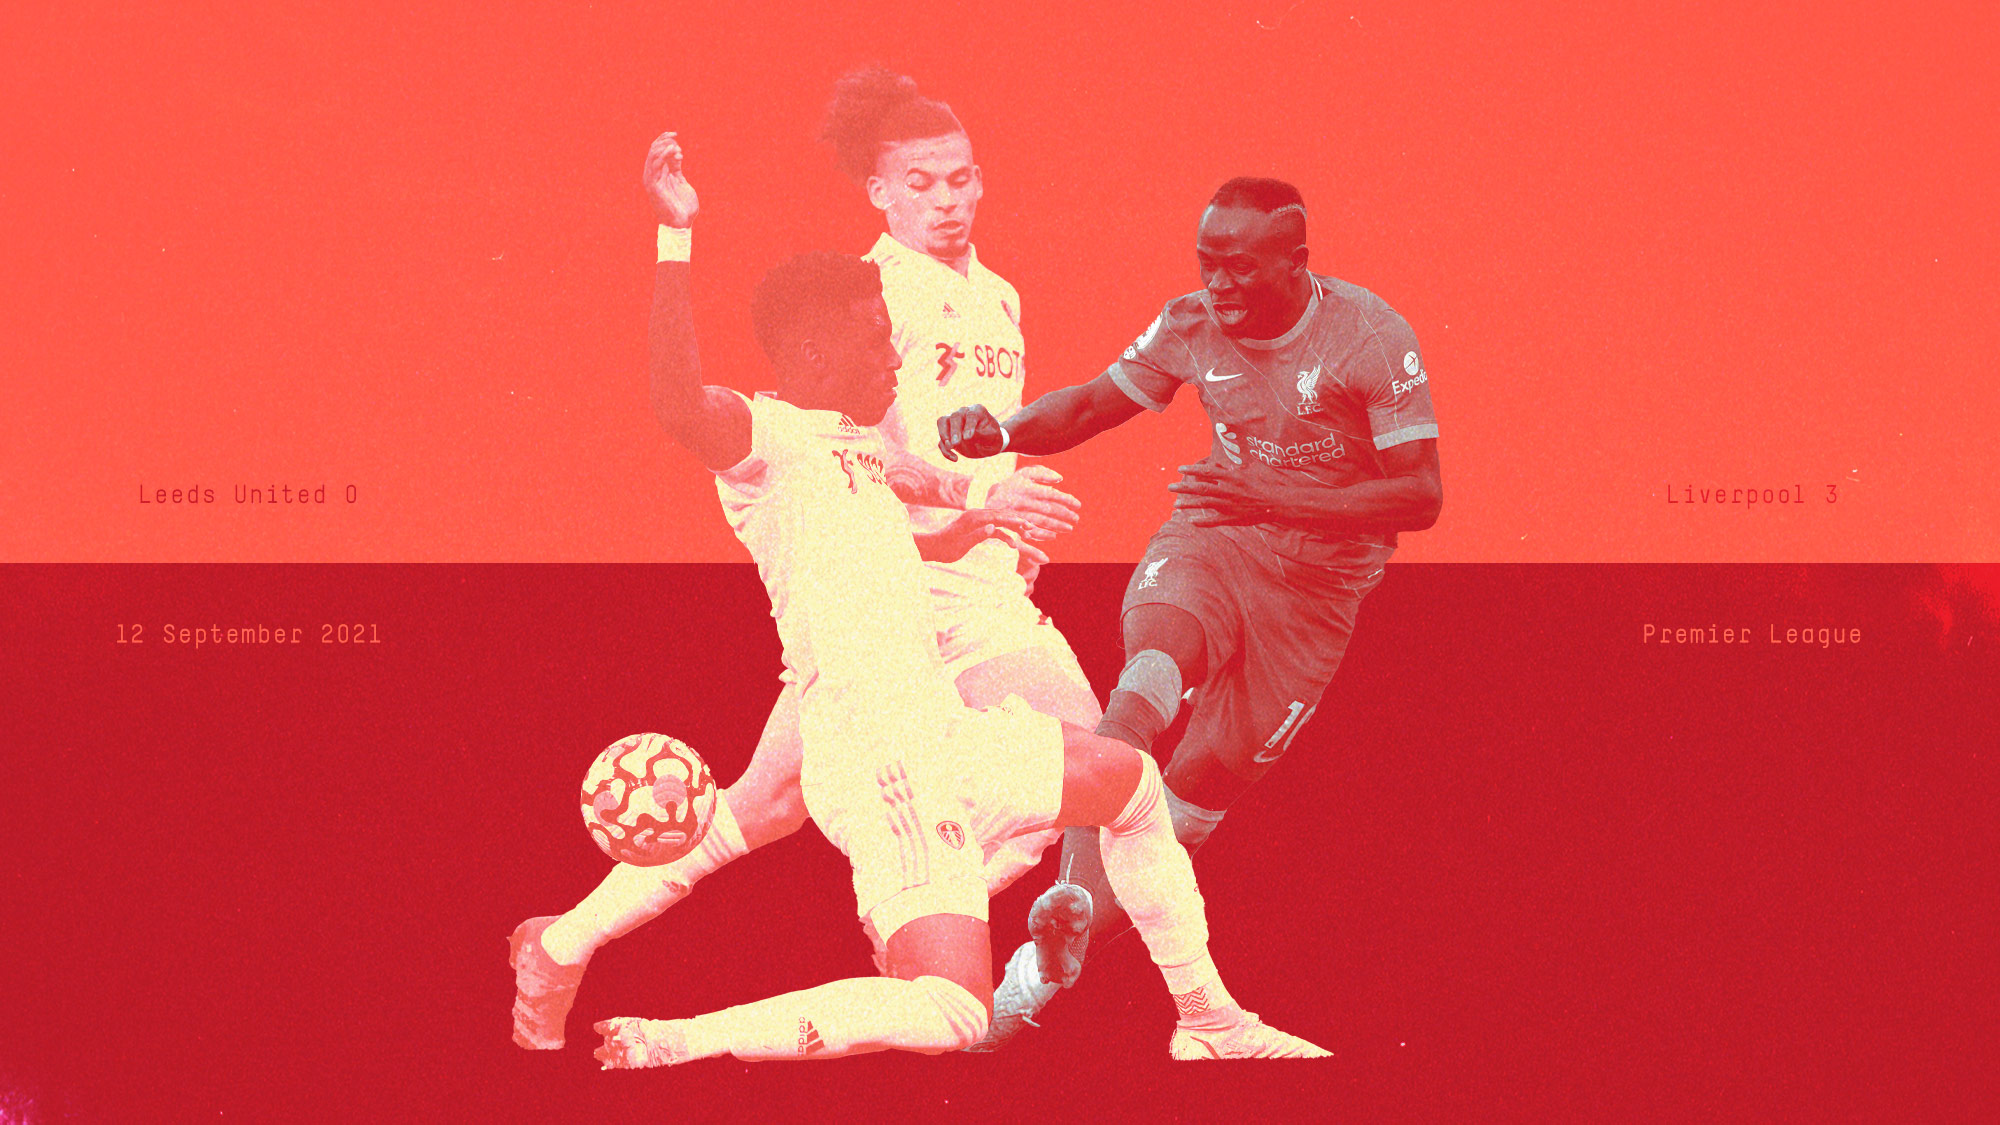 A graphic showing Firpo tackling Mane while Phillips looks on